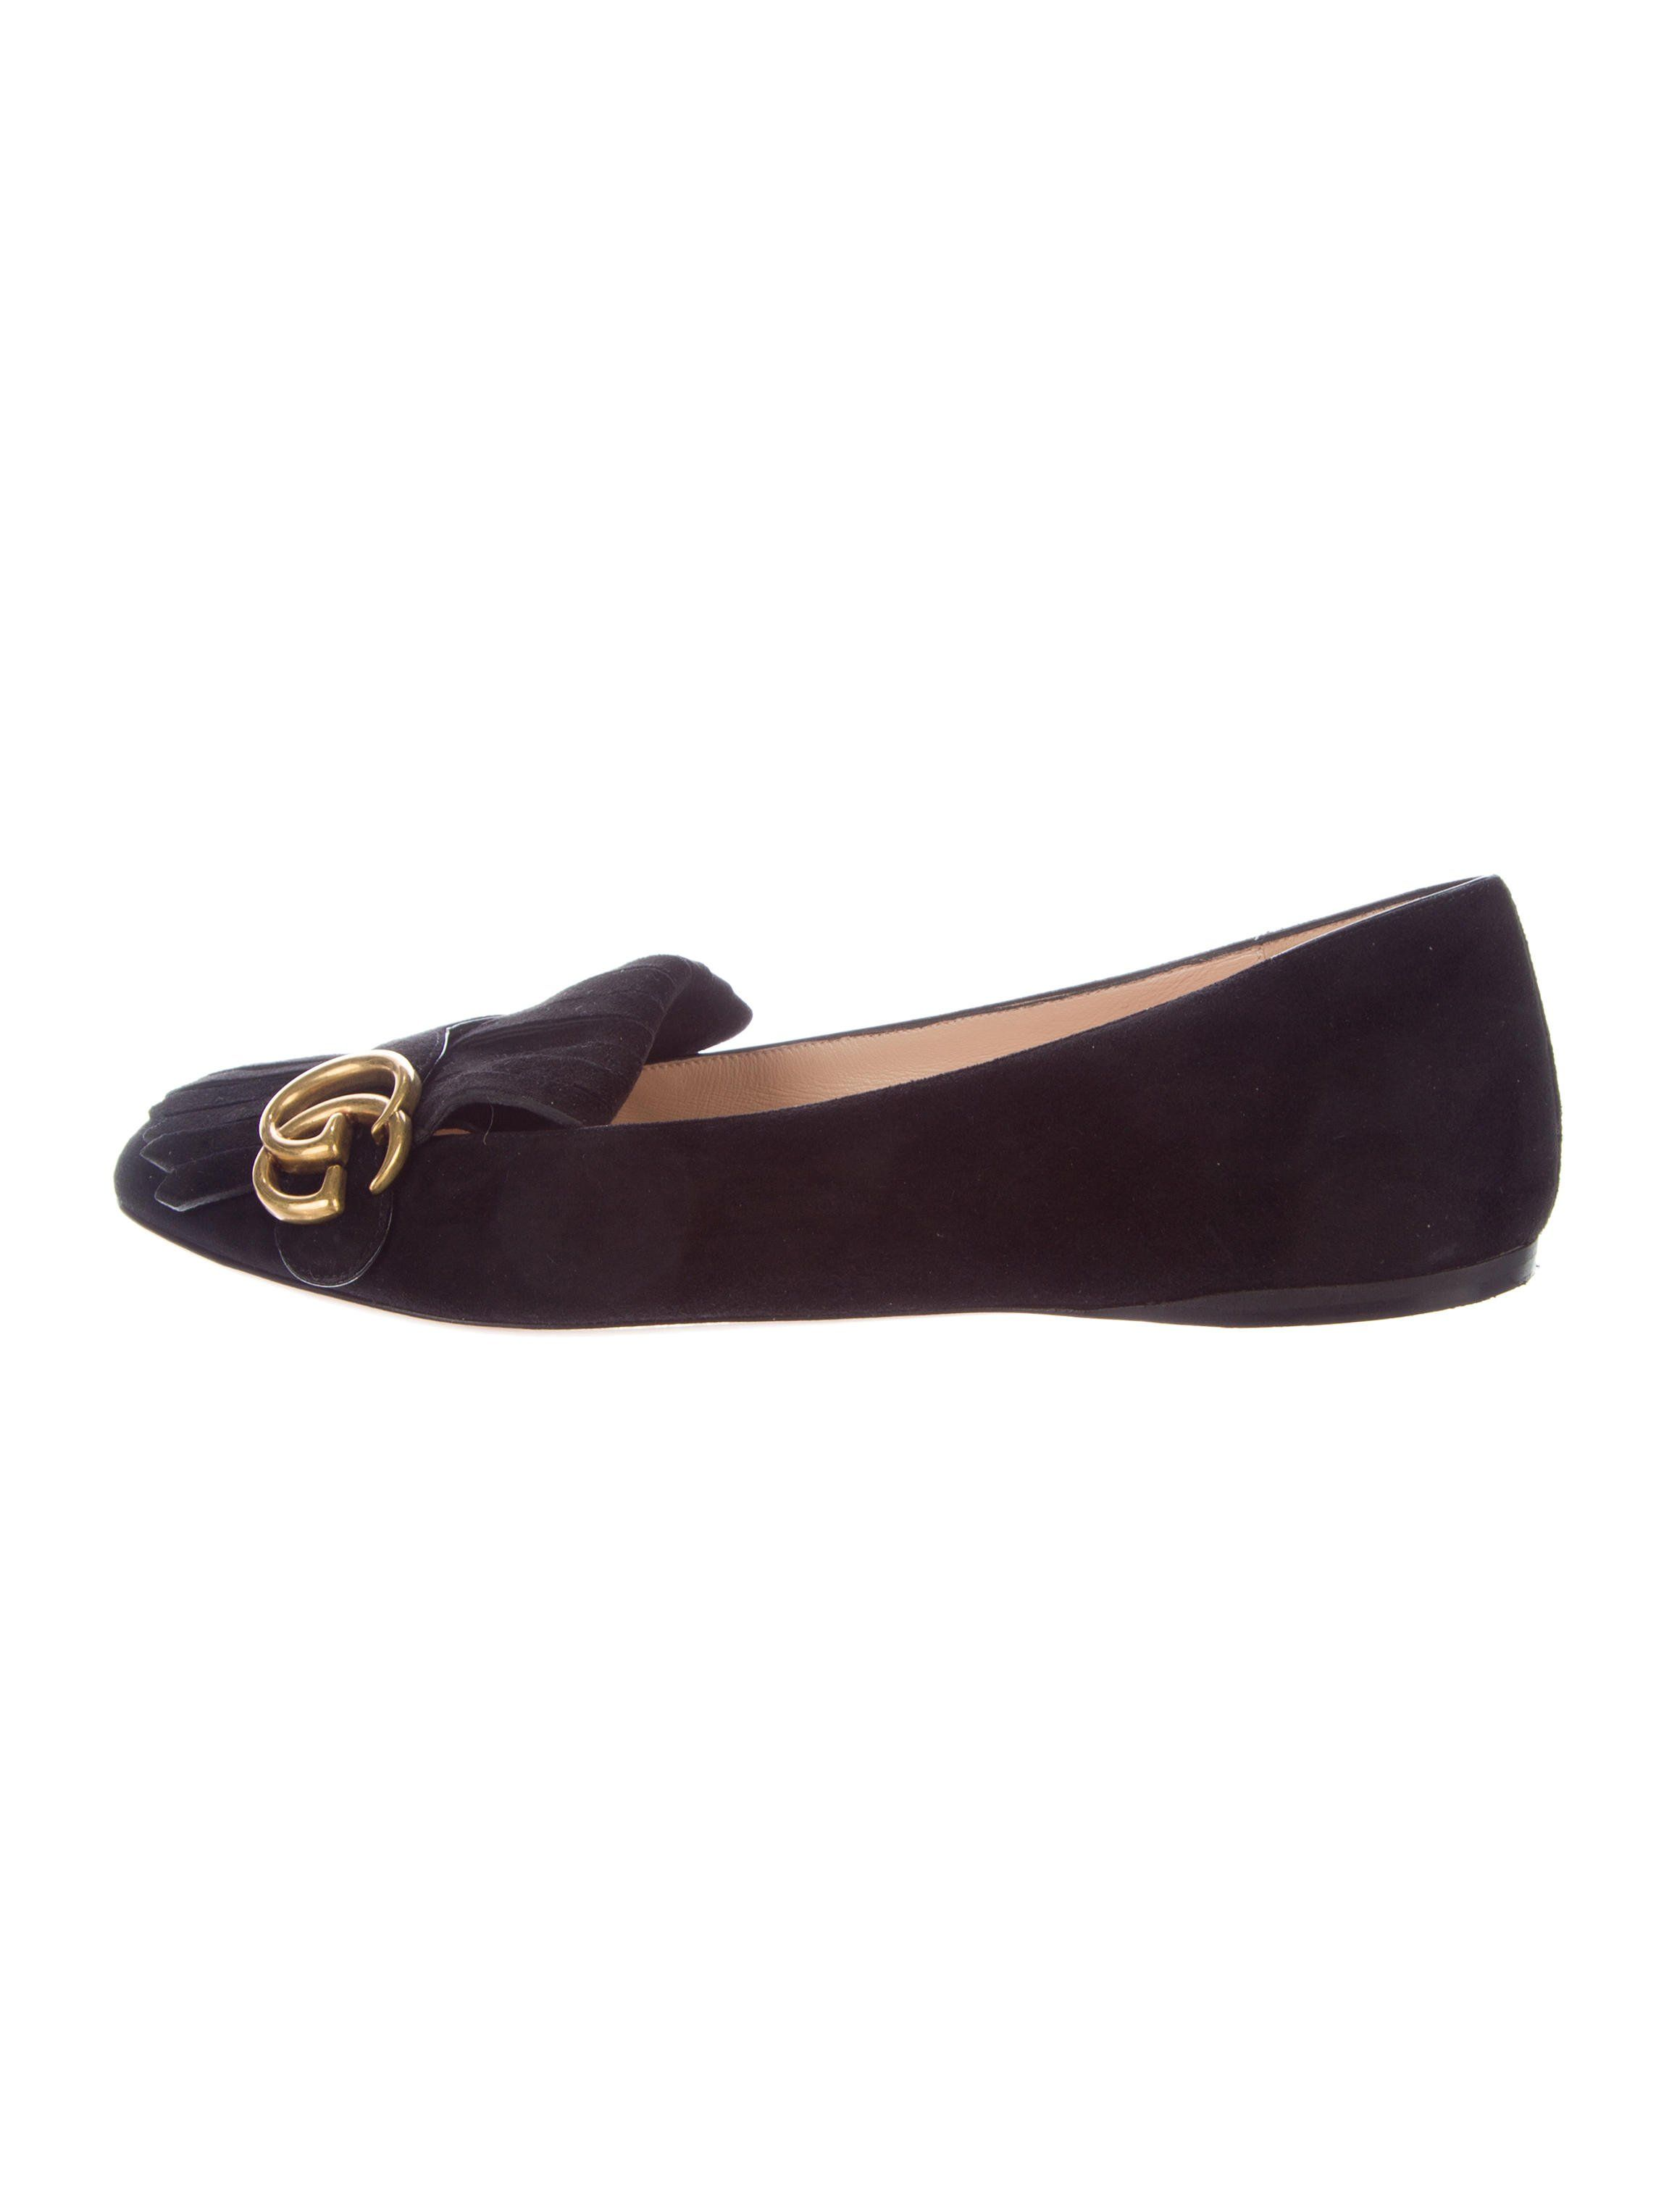 3e0a3af7478 Black suede Gucci Marmont flats with kiltie accents featuring gold-tone Marmont  GG at vamps and stacked heels. Includes dust bag.